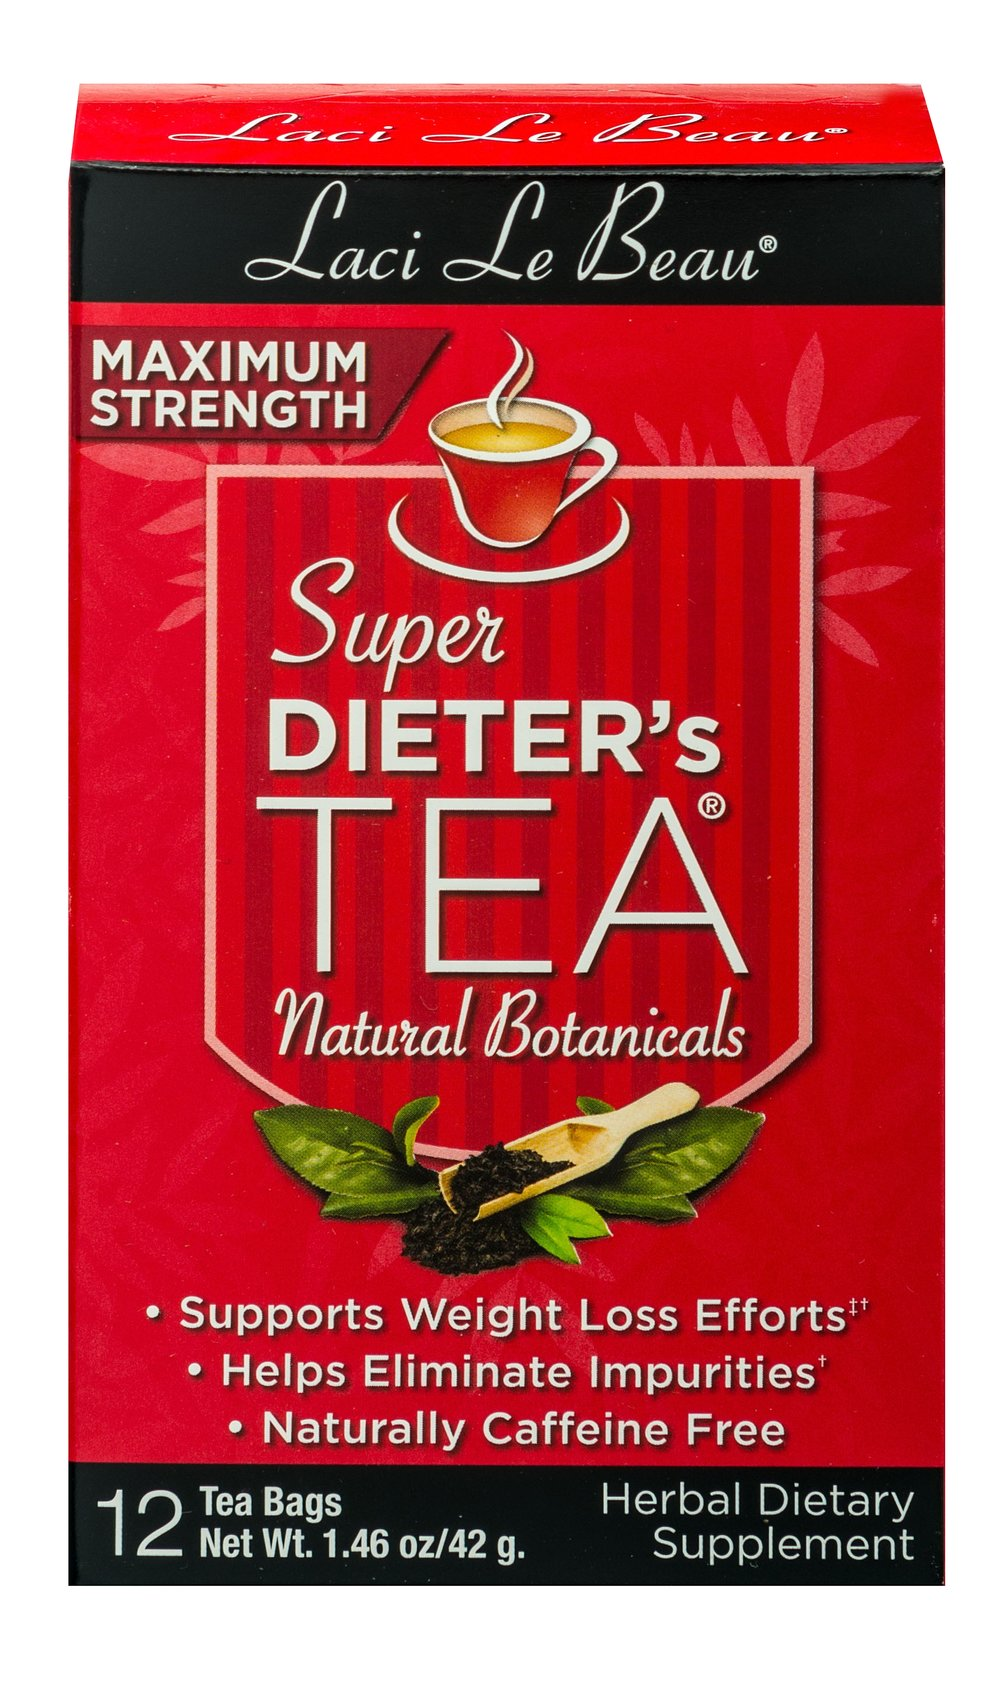 Super Dieter's Tea® Maximum Strength <p><b>From the Manufacturer's Label: </p></b><p>Naturally Caffeine Free. Super Dieter's Teas were created from painstaking research, offering a delicious alternative that has been helping people across the  nation. ** Maximum Strength Teas can assist those of you who need an extra boost from regular Super Dieter's Formula.** </p> 12 Tea Bags  $3.99